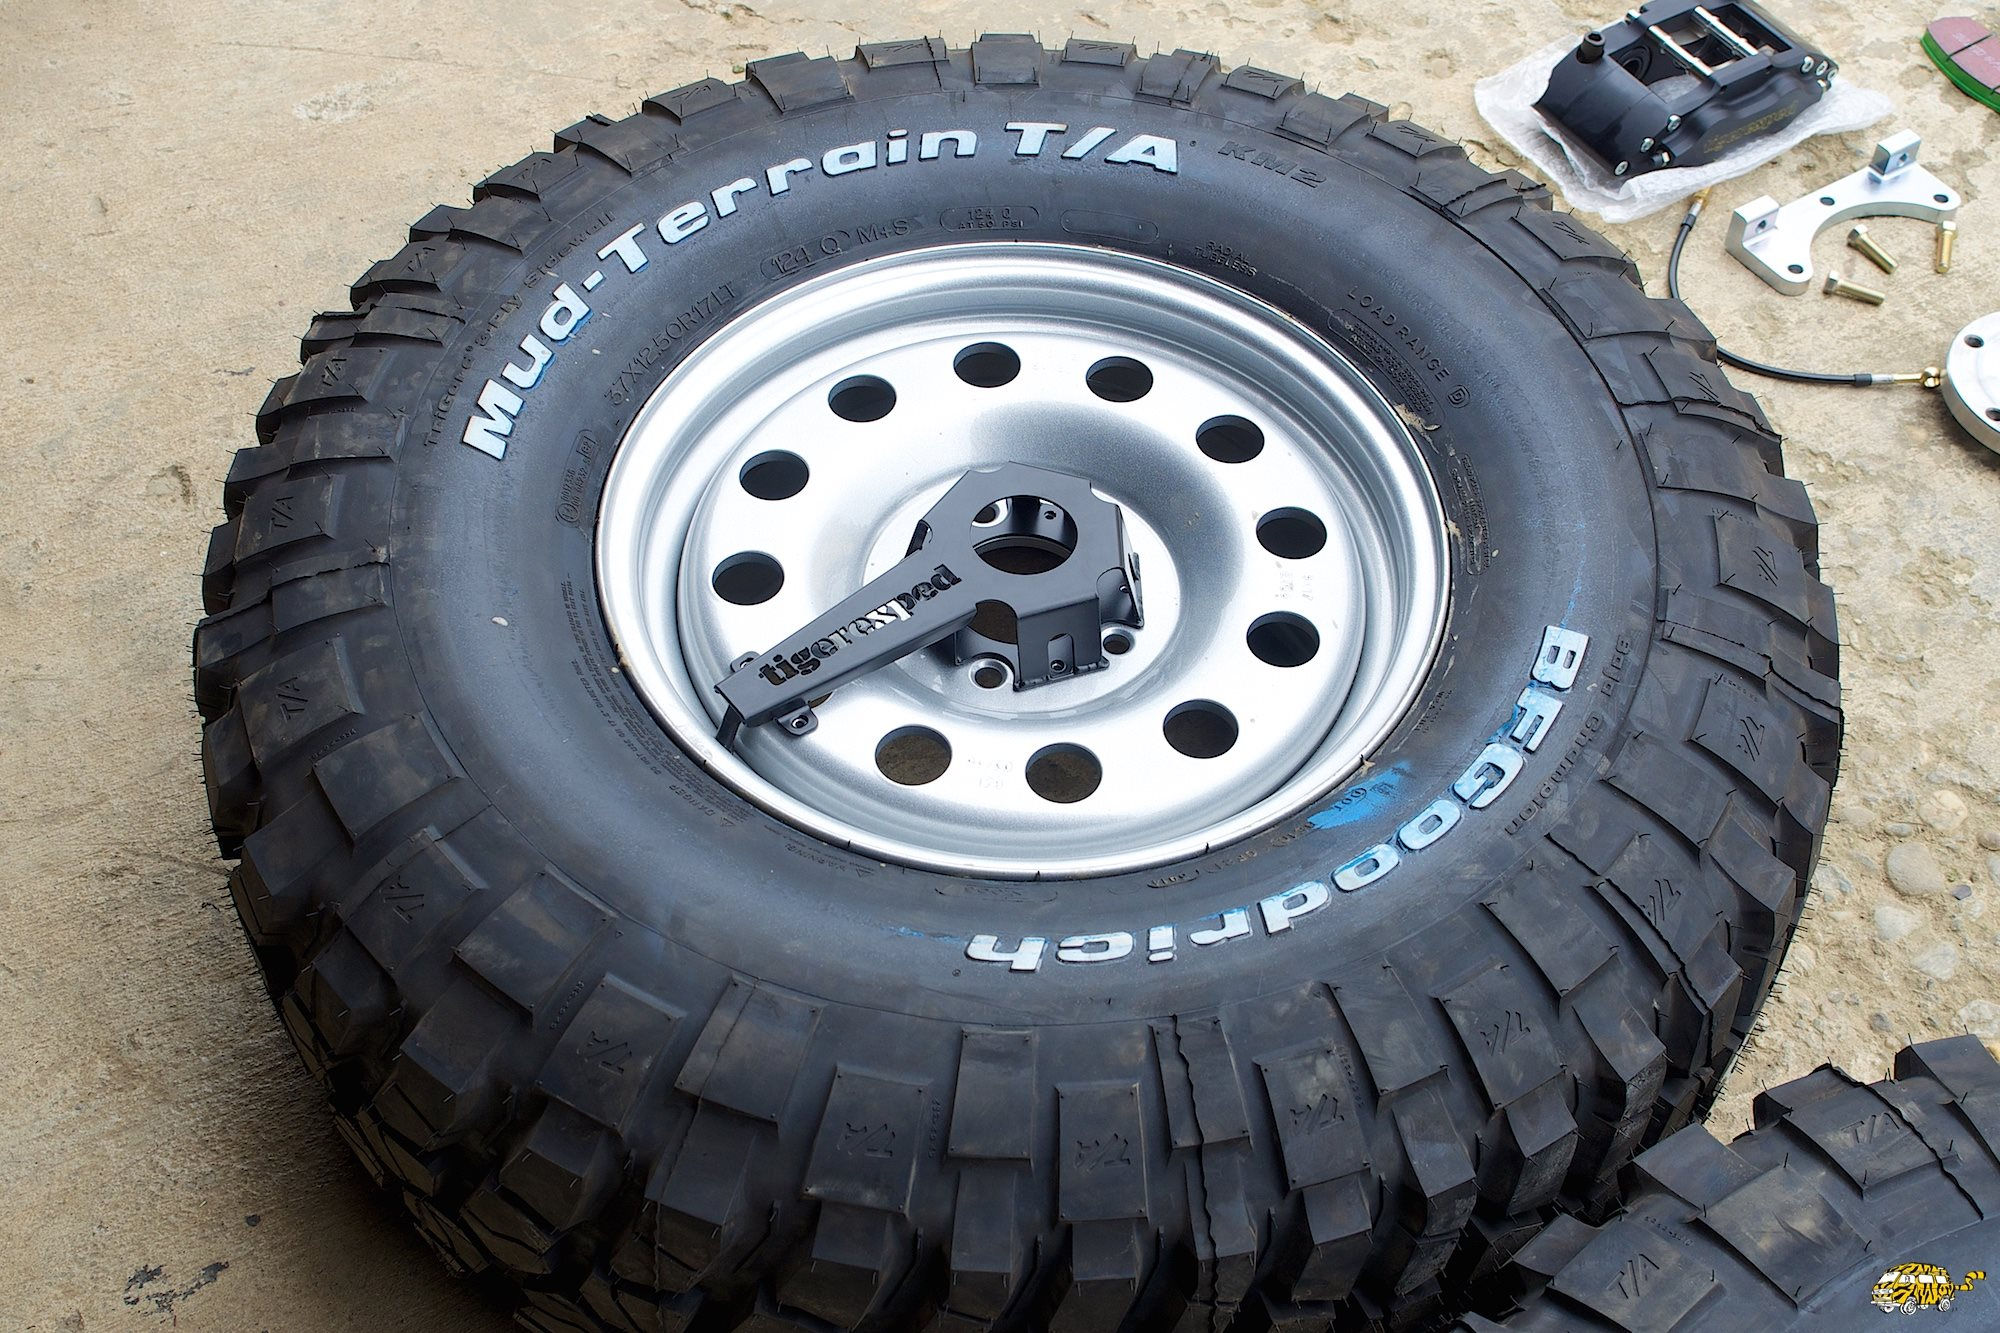 Volvo 6x6 Tiger Exped Brake Kit gonflage auto.jpg